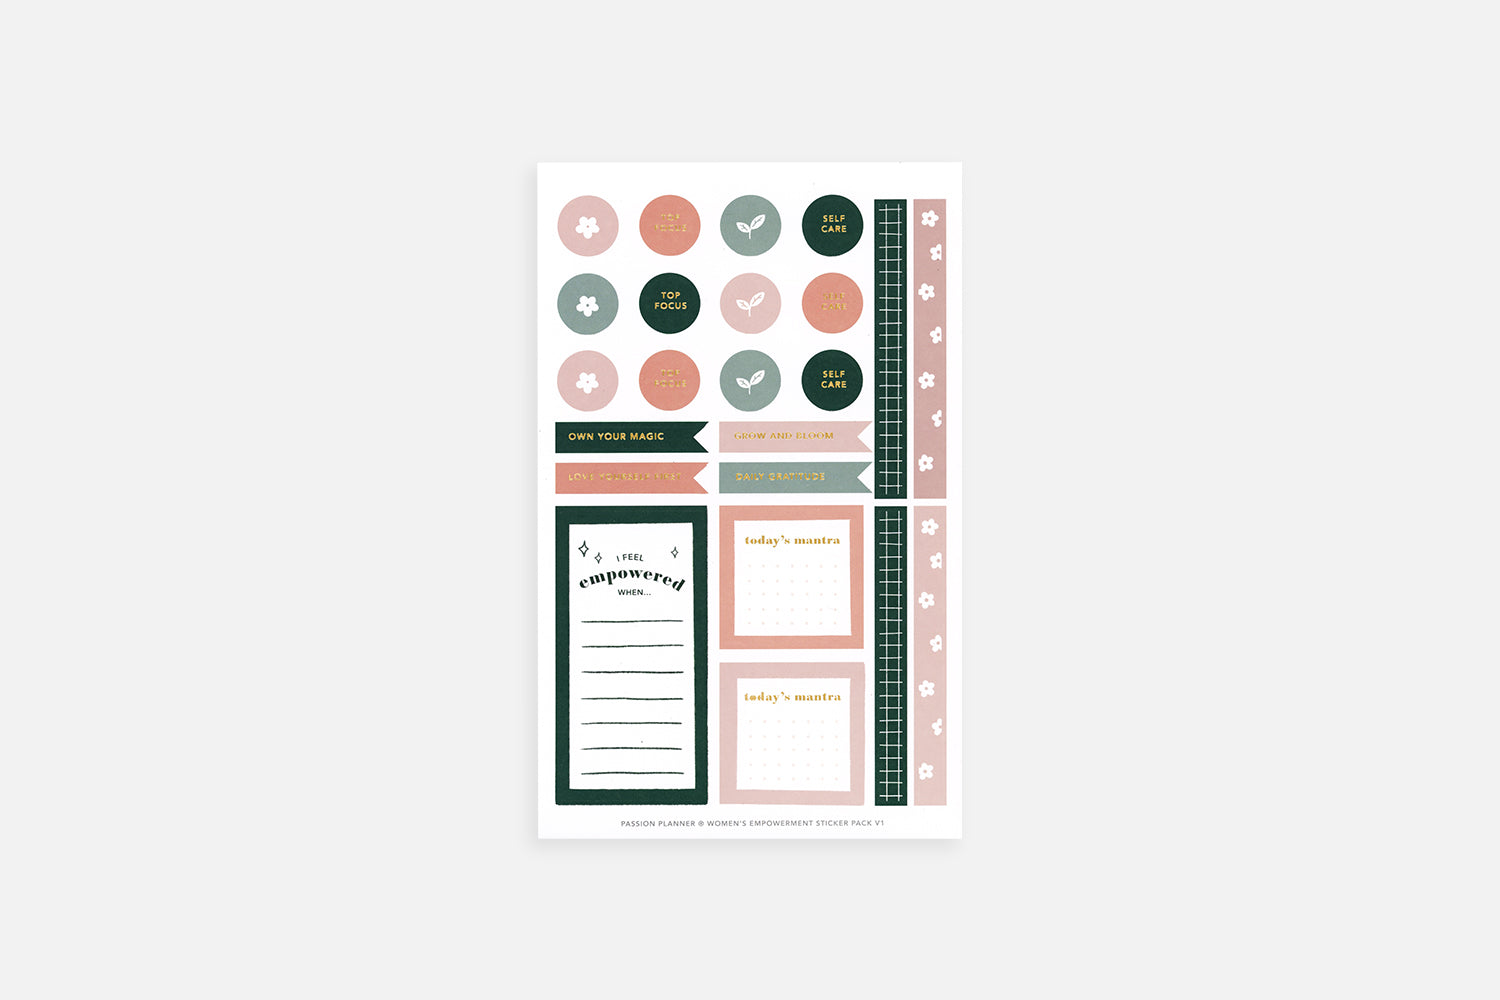 Women's Empowerment Sticker Pack V1 - Passion Planner